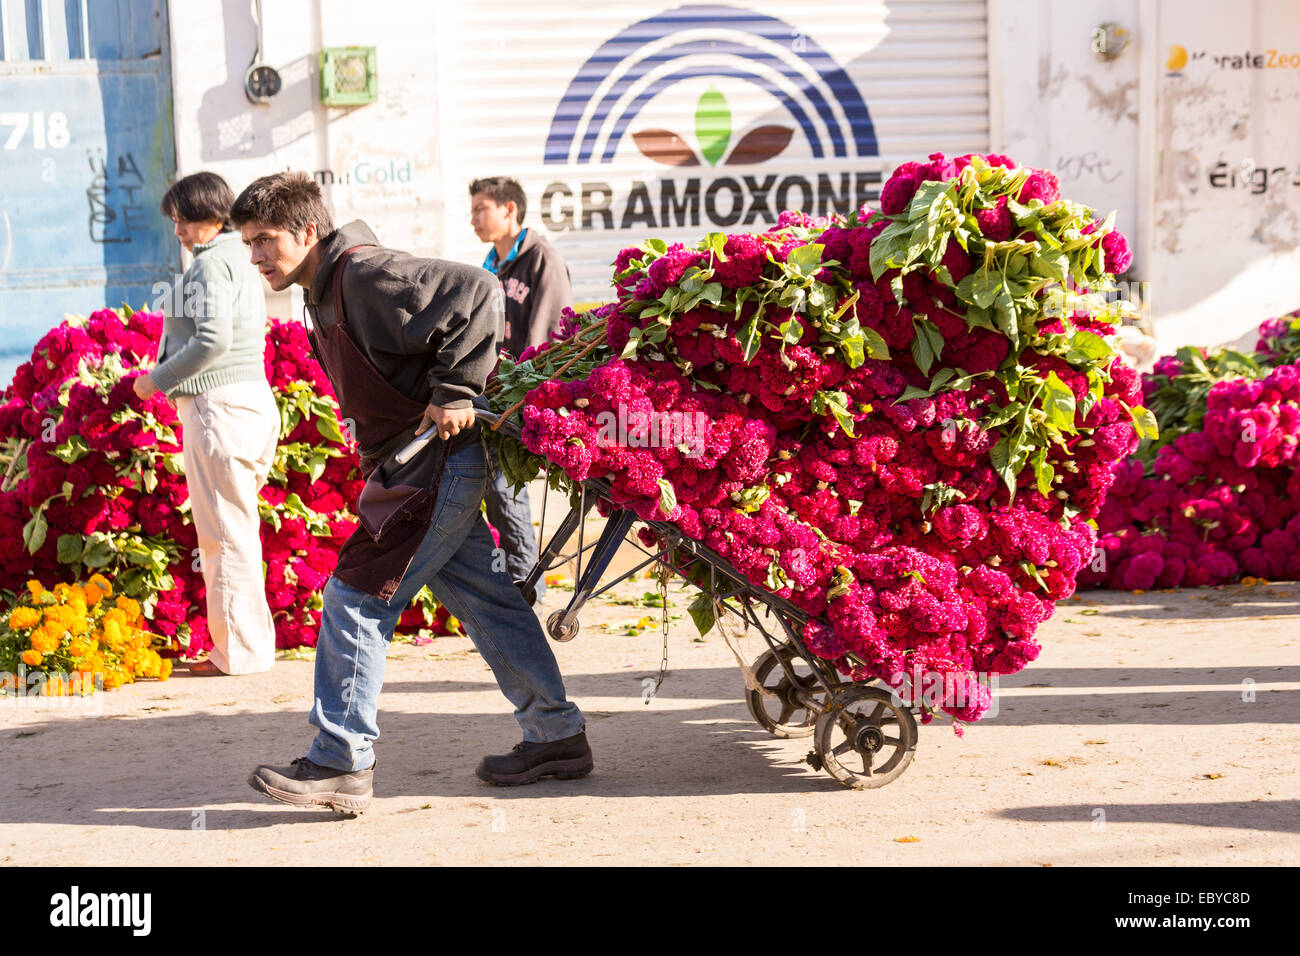 Vendors cart massive piles of flowers use to decorate tombs for the ...